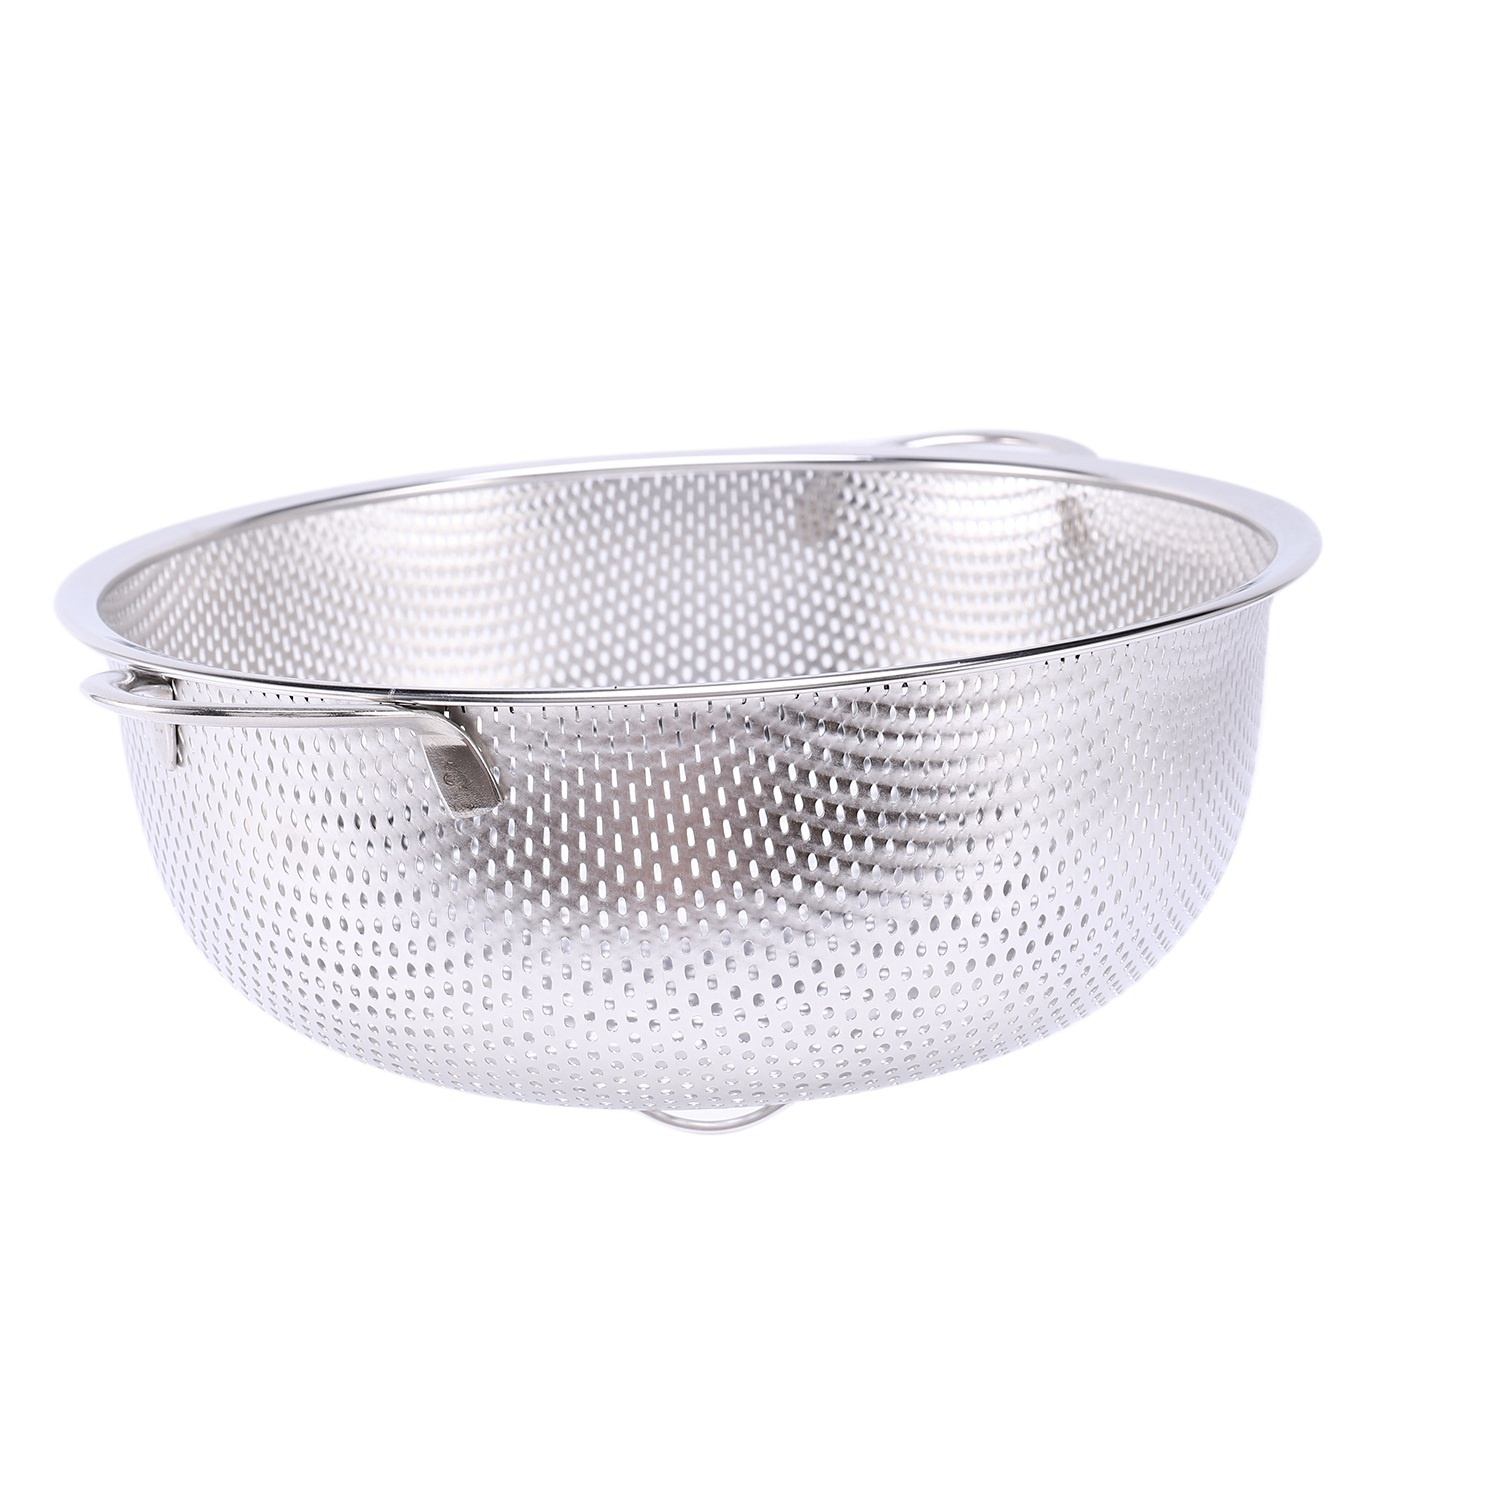 thumbnail 6 - Stainless Steel Colanders With Handle,Colander Perforated Strainer For Kitc D1Z4